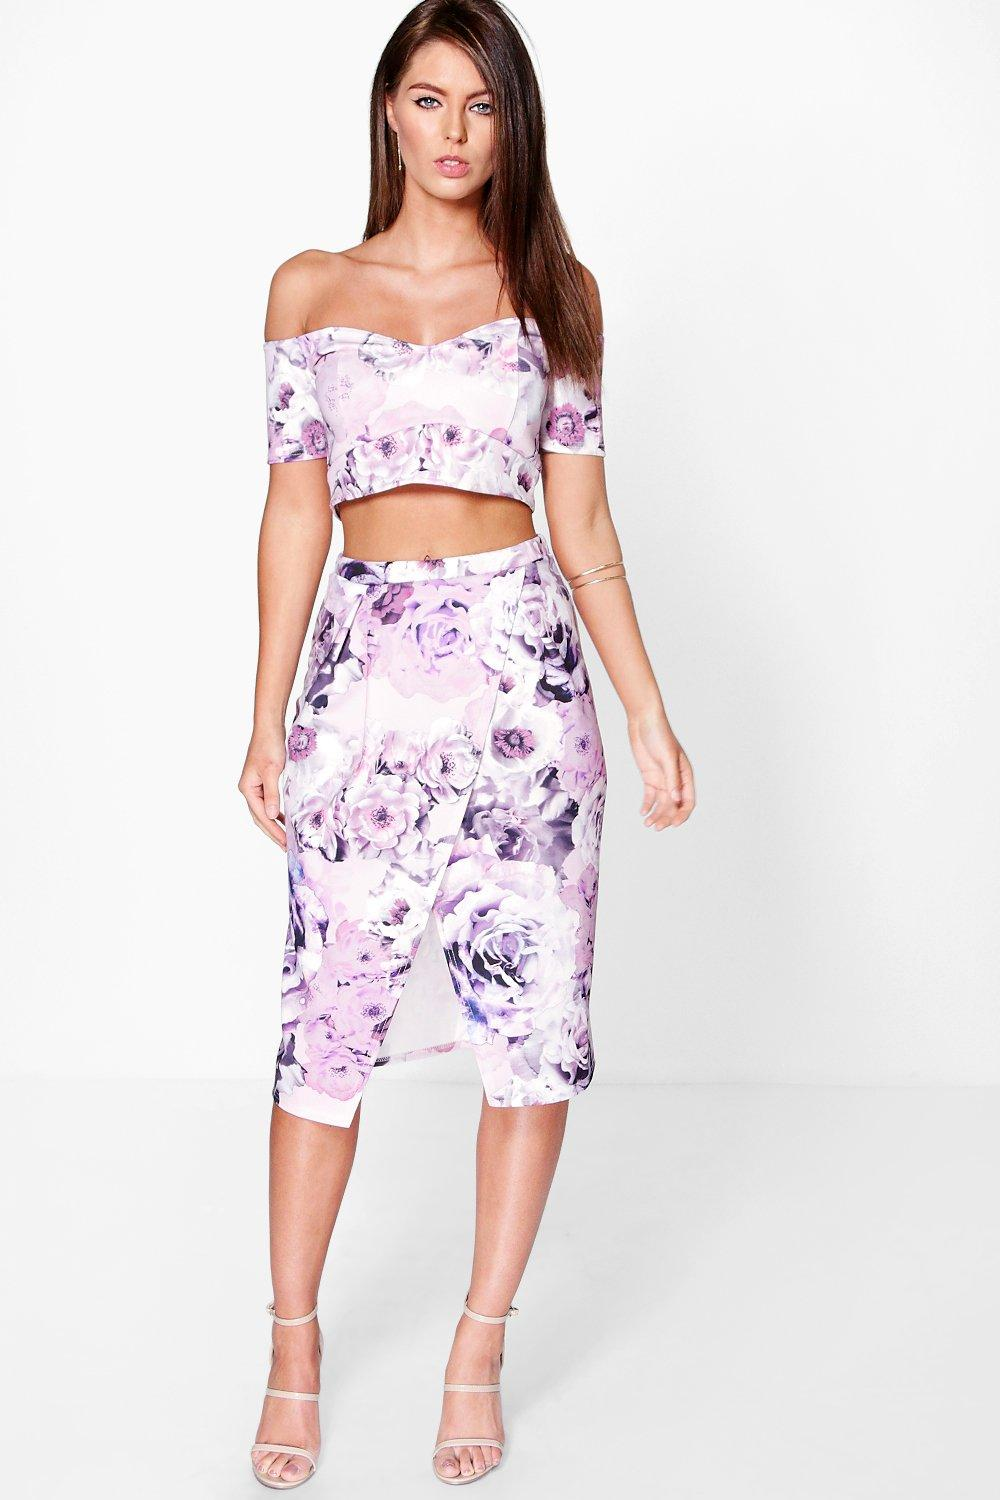 Pia Floral Wrap Midi Skirt & Crop Top Co-Ord Set at boohoo.com